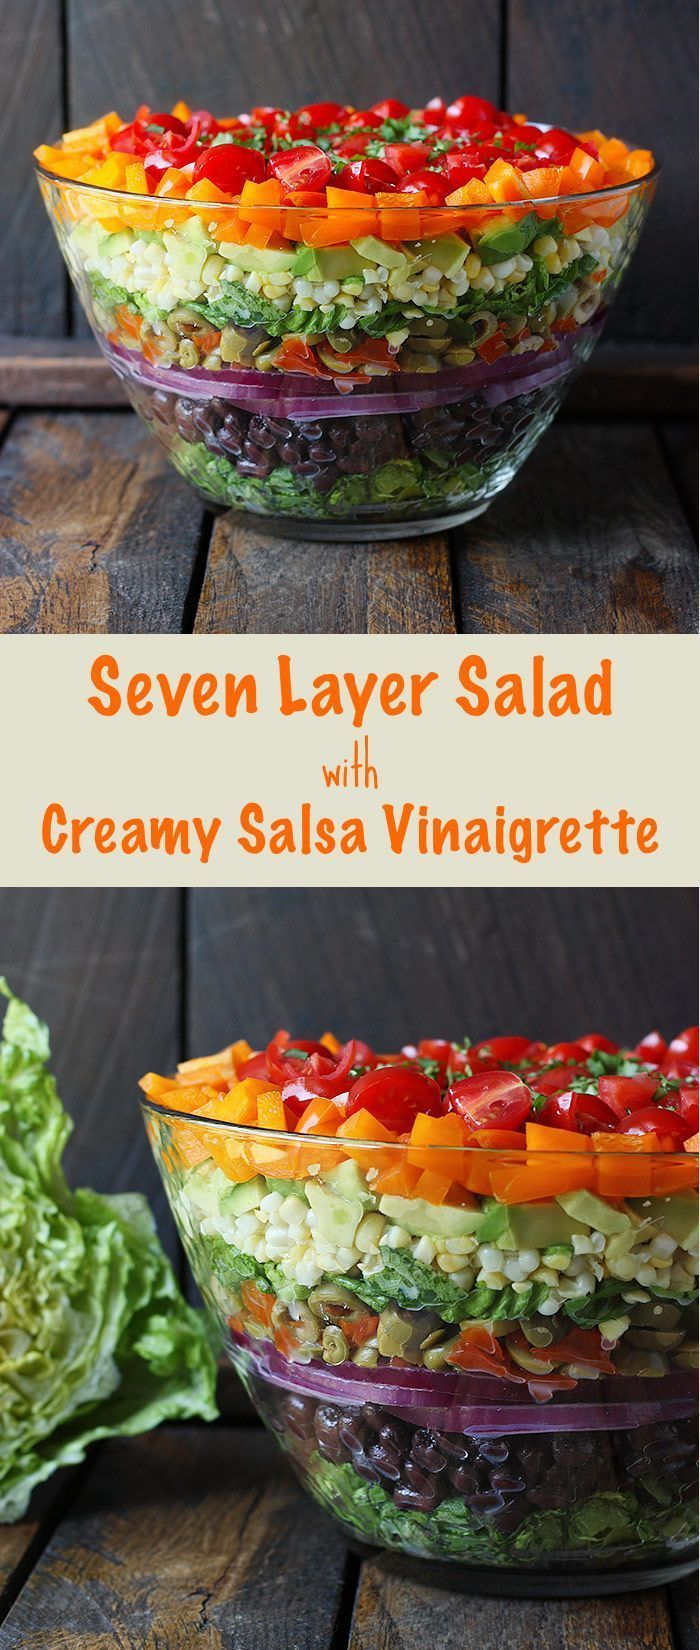 Seven Layer Salad with Creamy Salsa Vinaigrette - this fresh, no gloppy-layers-of-mayo salad is a showstopper on your table (and healthy, too). Recipe at SoupAddict.com | vegetarian | chopped salad | tex mex